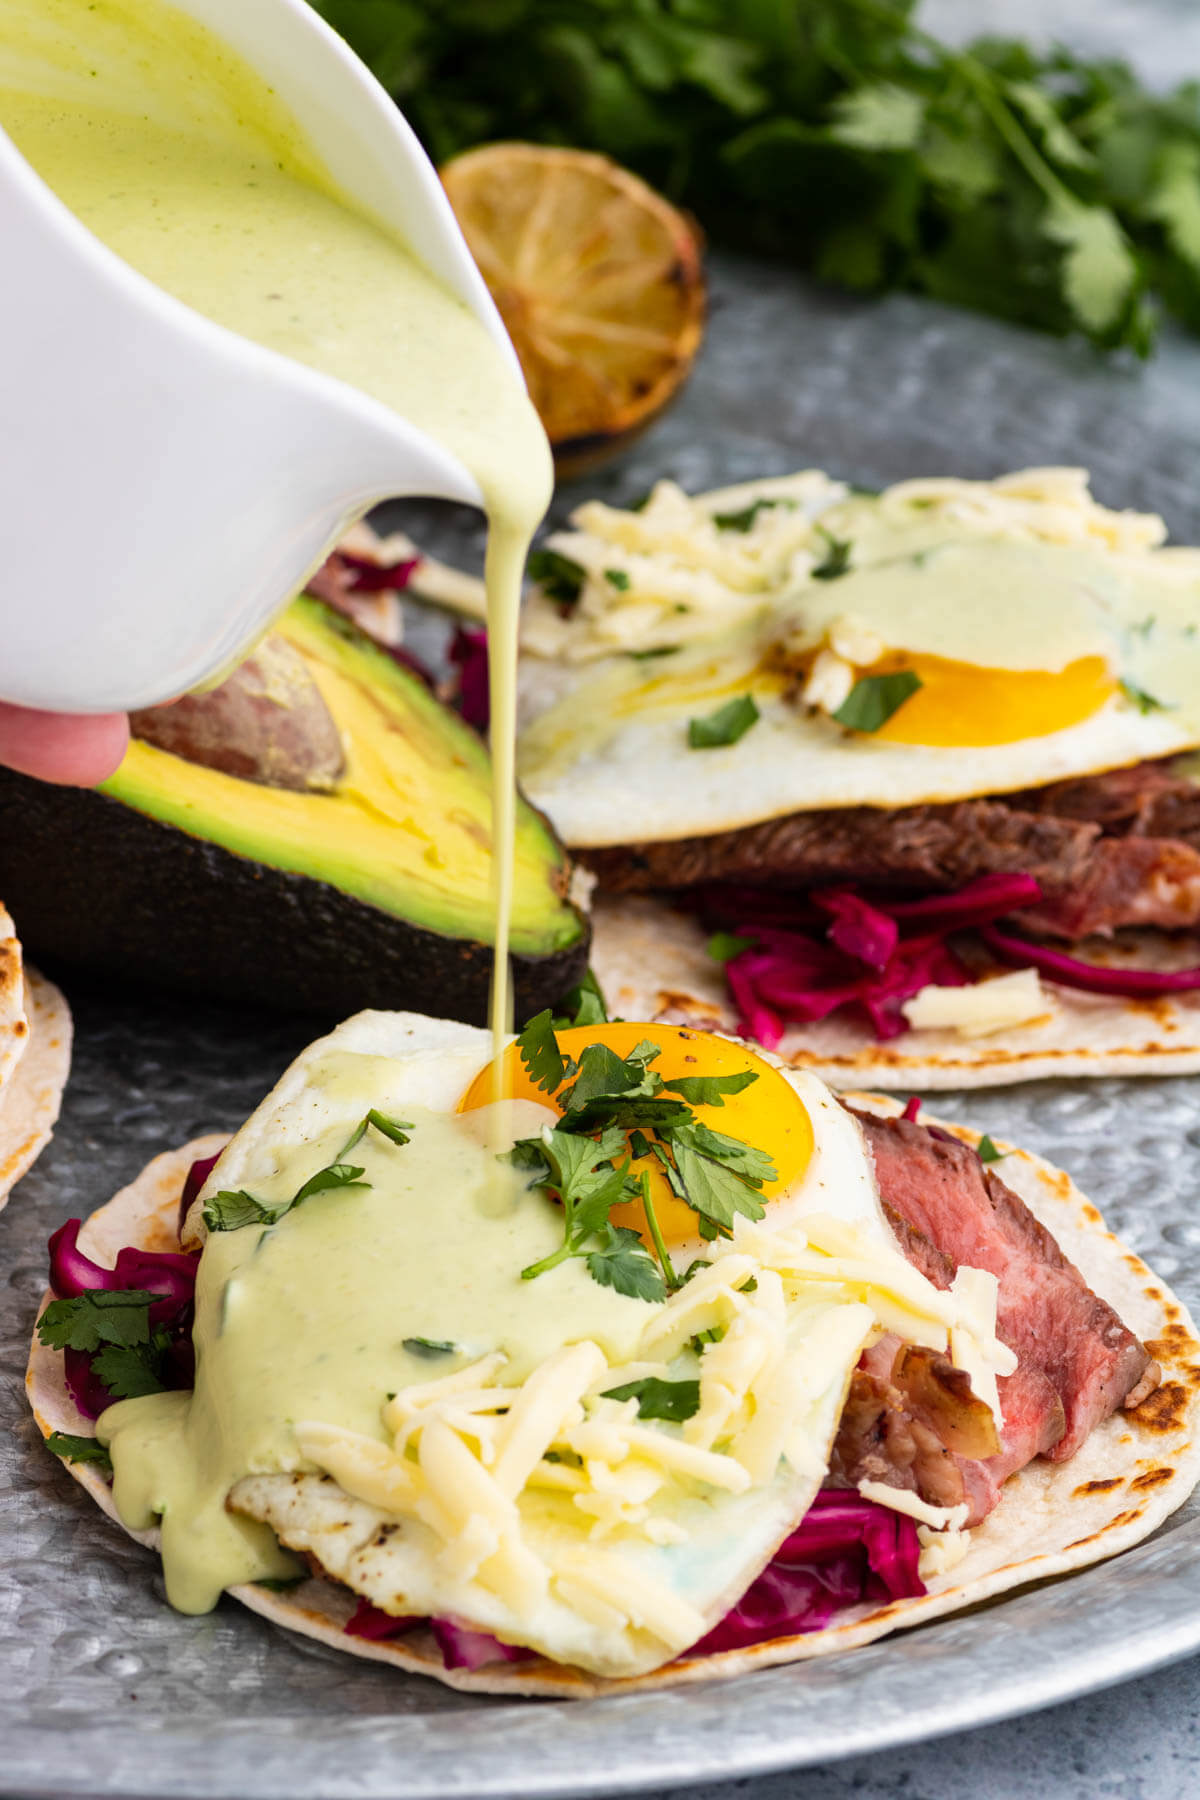 Green sauce being poured over a steak and egg taco.